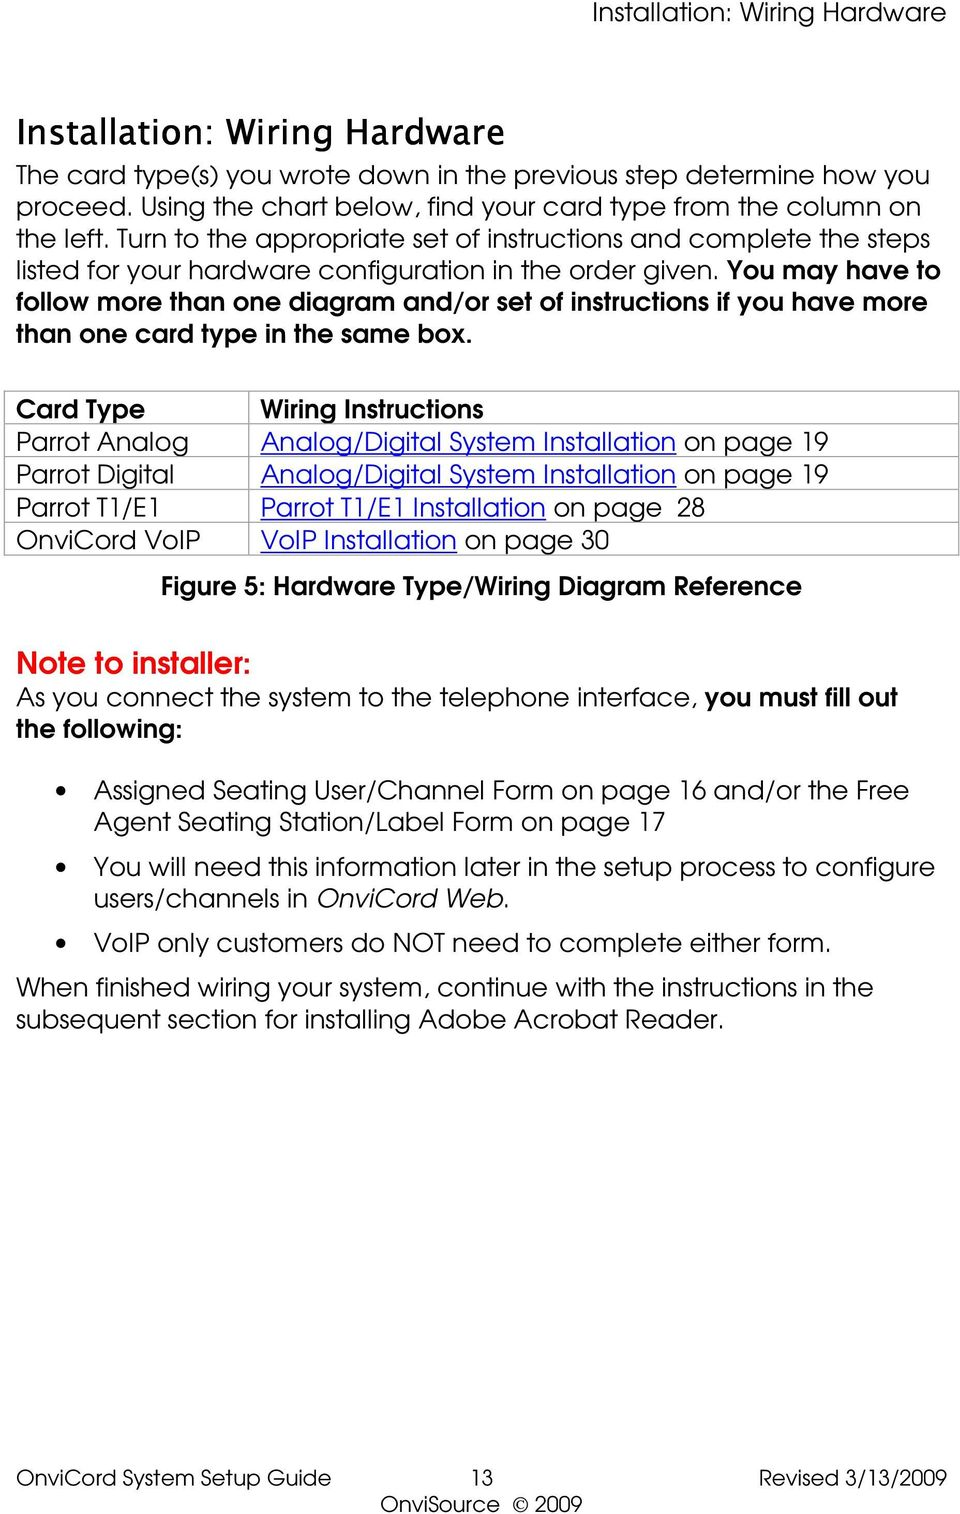 System Setup Guide Version 6x Pdf Telephone Interface Box Wiring Diagram You May Have To Follow More Than One And Or Set Of Instructions If